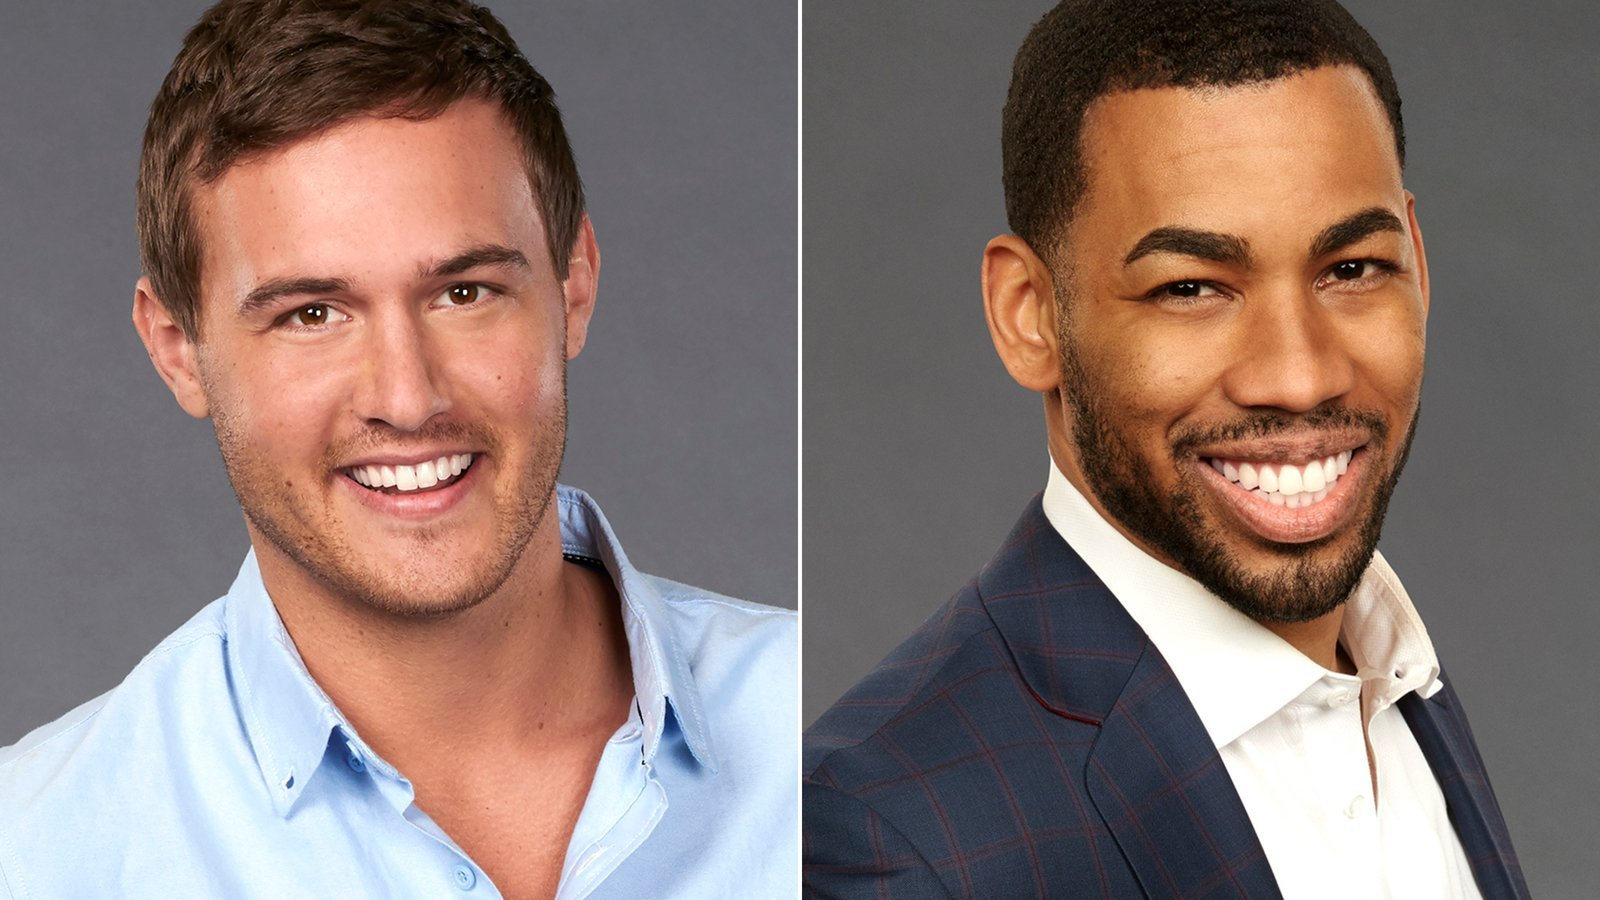 New 'Bachelor' choice both a hit and a miss